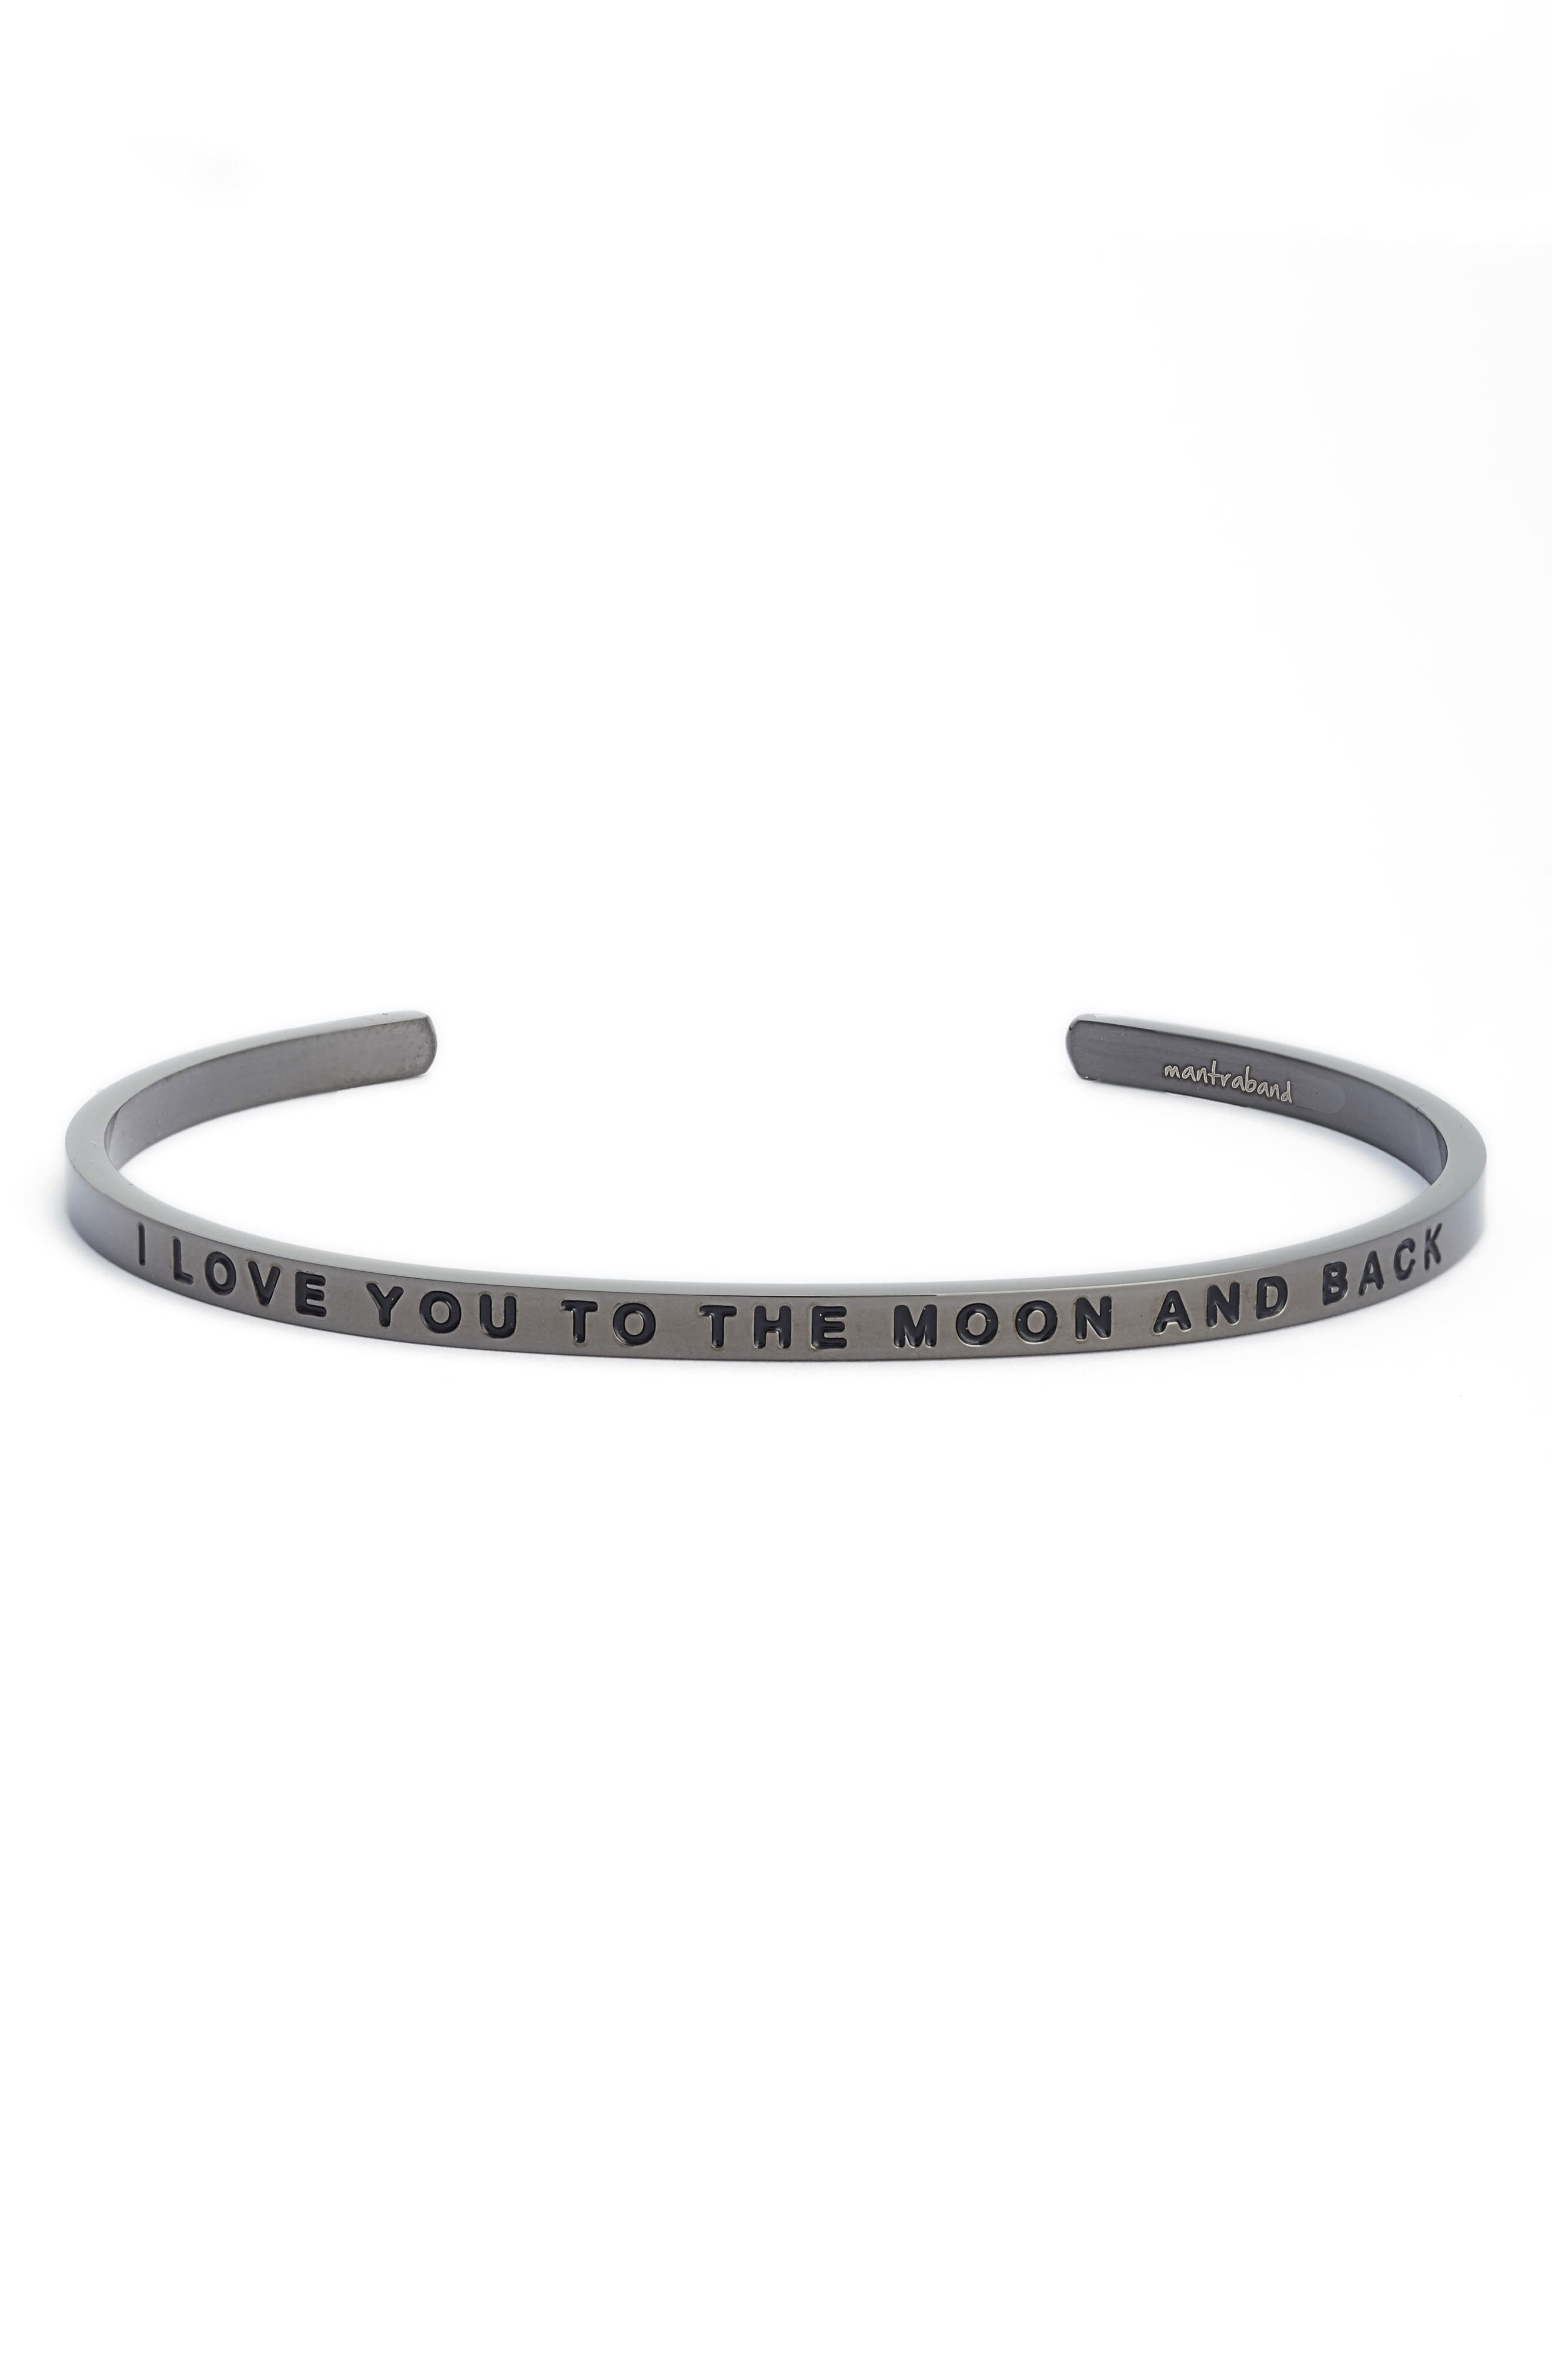 MantraBand® I Love You to the Moon and Back Cuff Bracelet